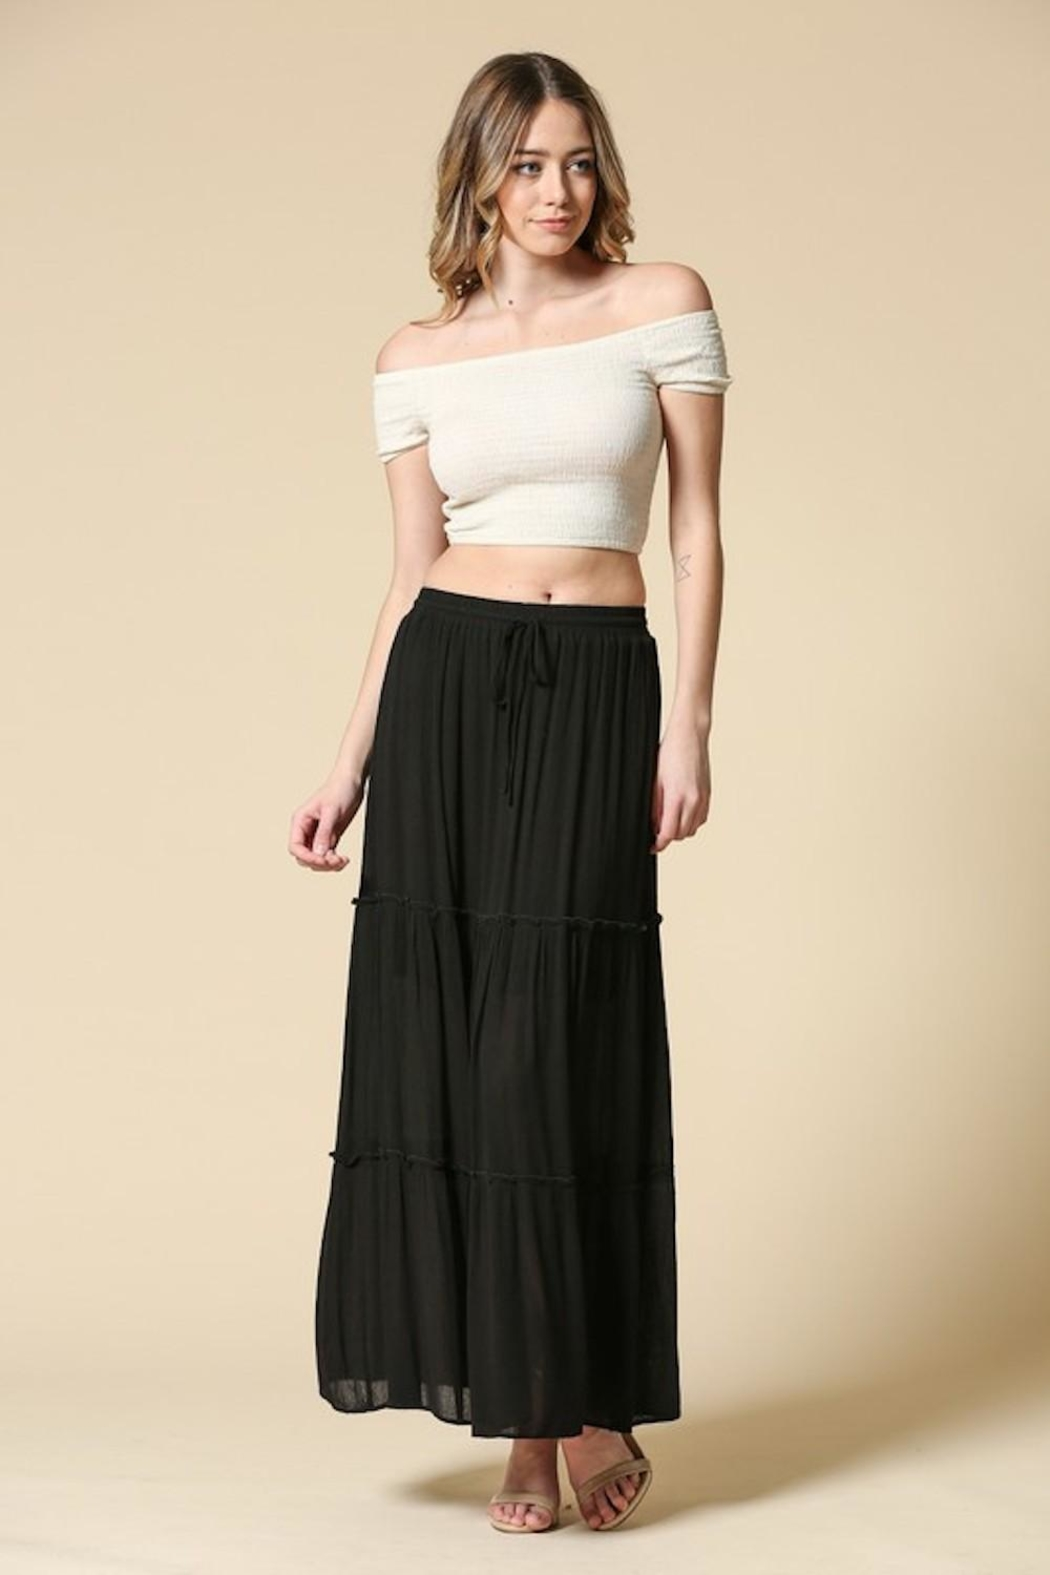 Illa Illa Black Maxi Skirt - Main Image